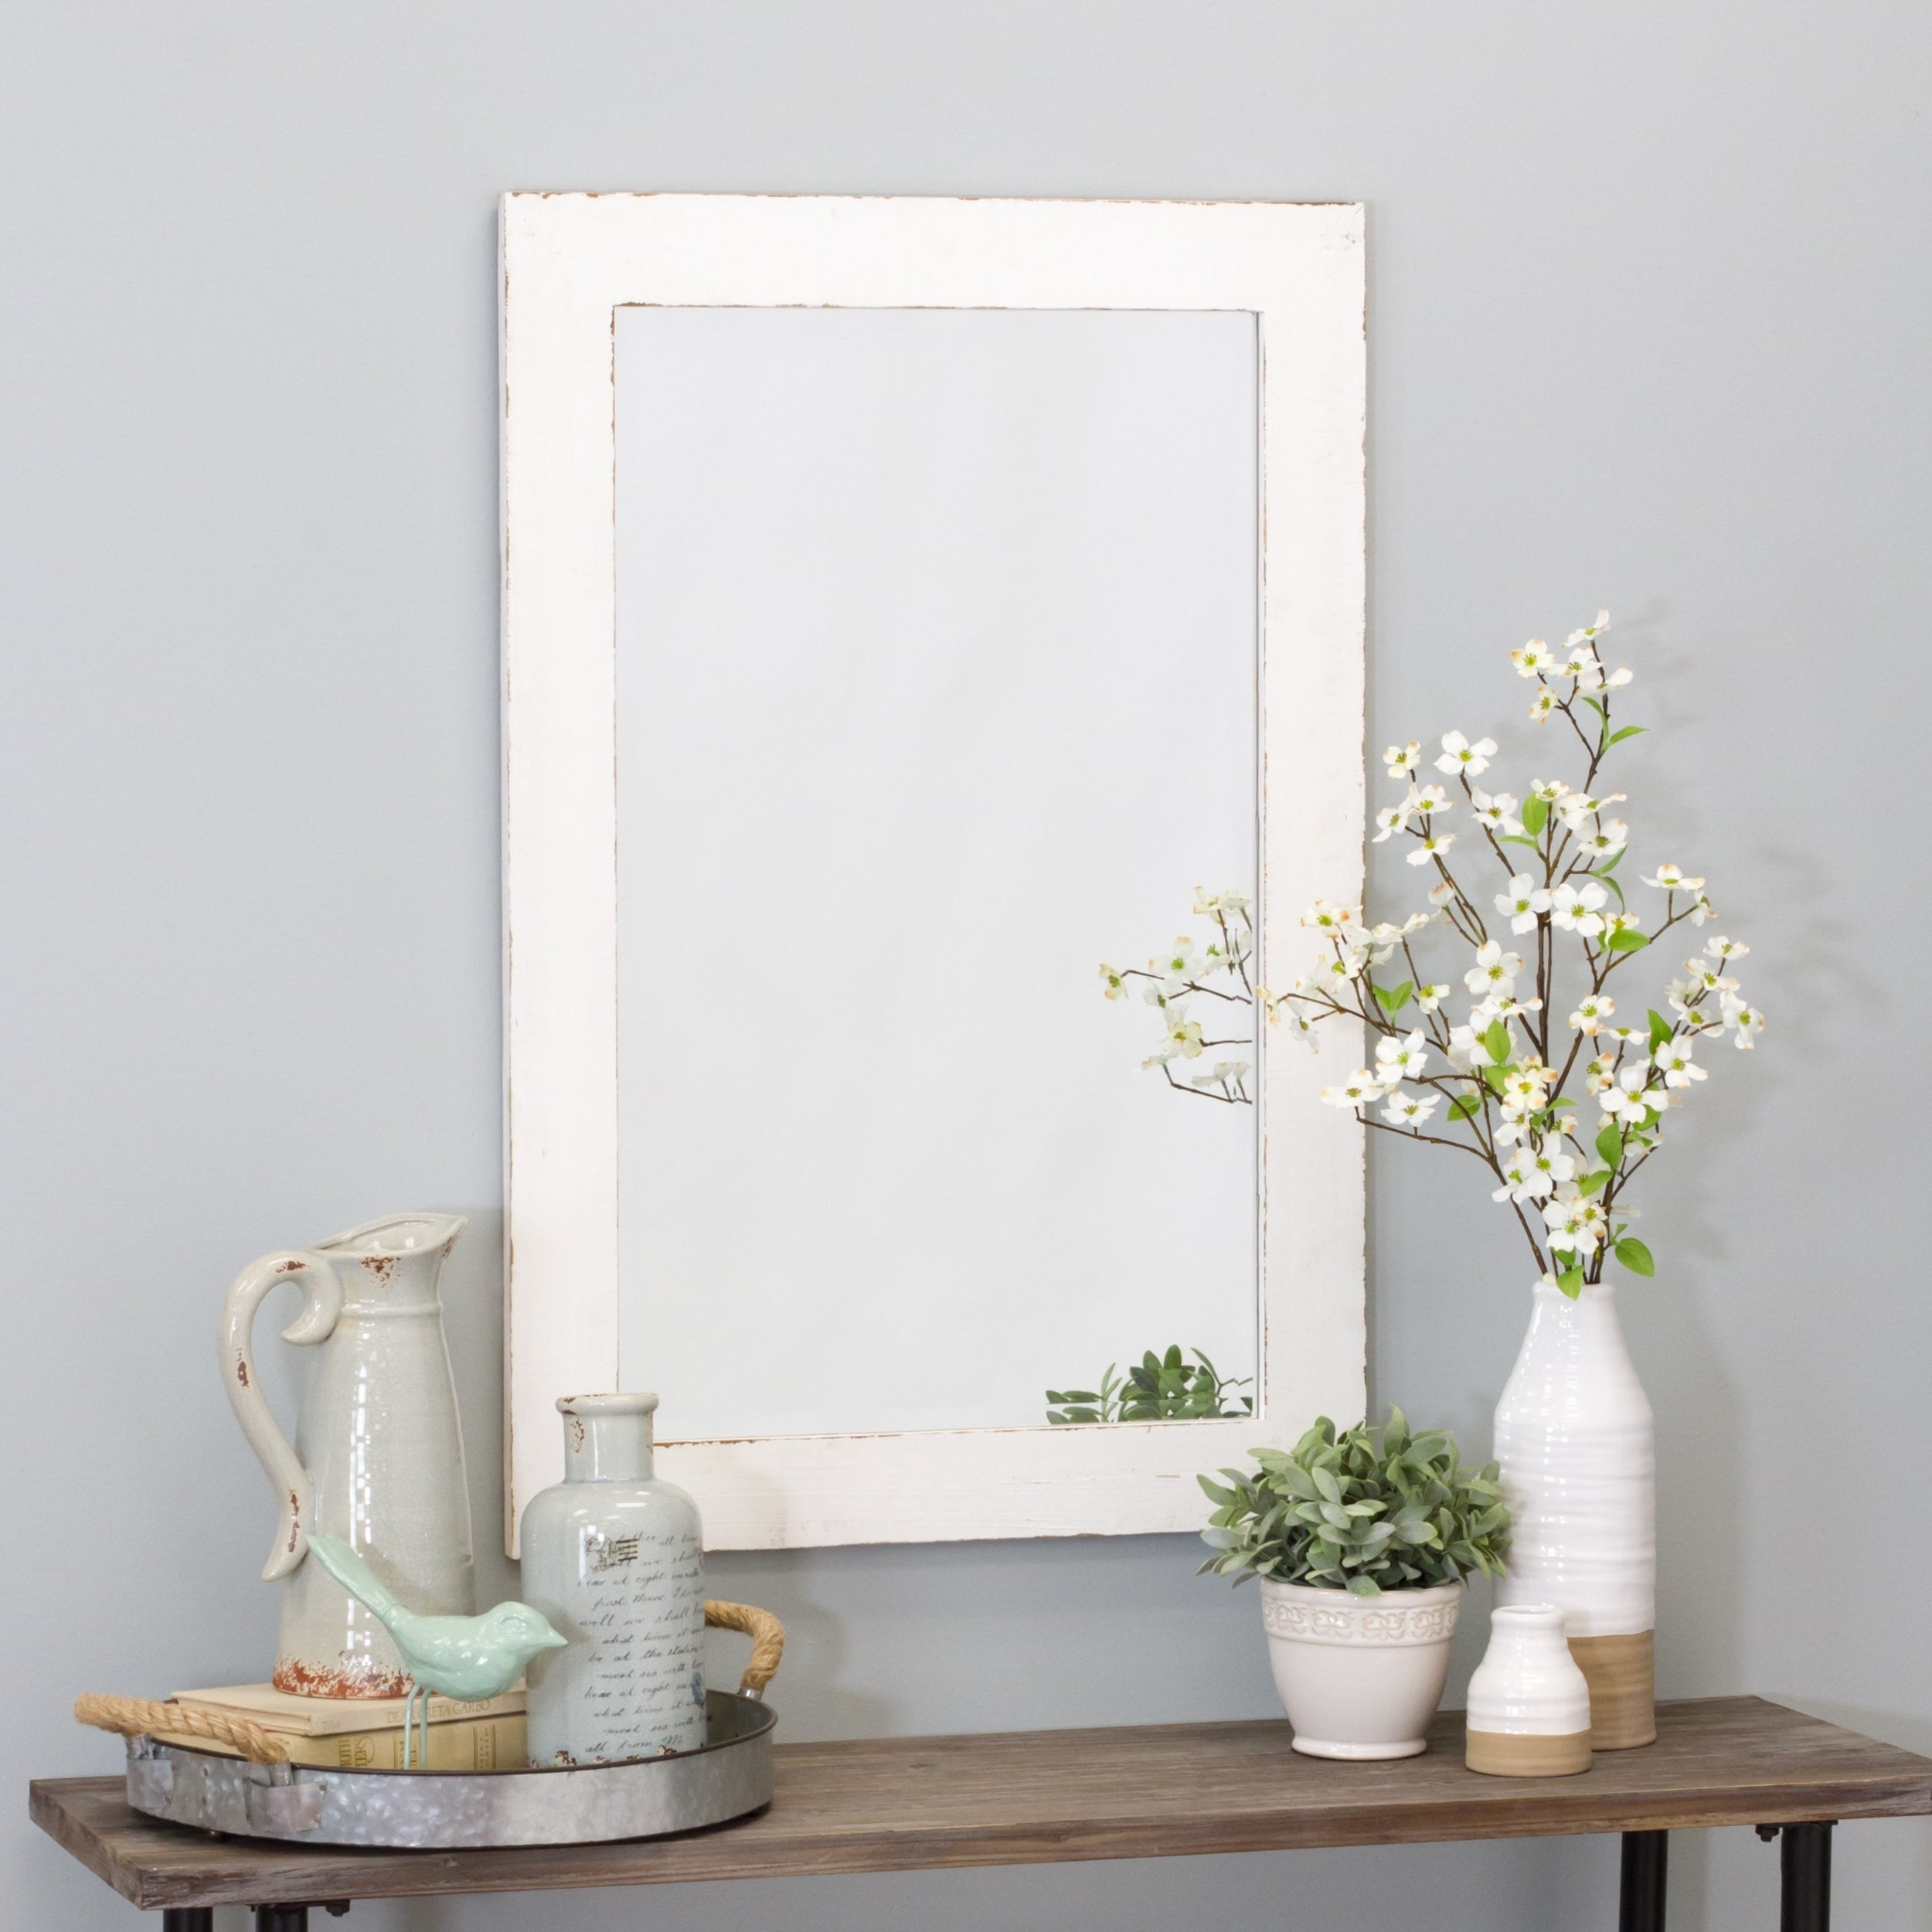 White, Wood Mirrors | Shop Online At Overstock with Longwood Rustic Beveled Accent Mirrors (Image 27 of 30)